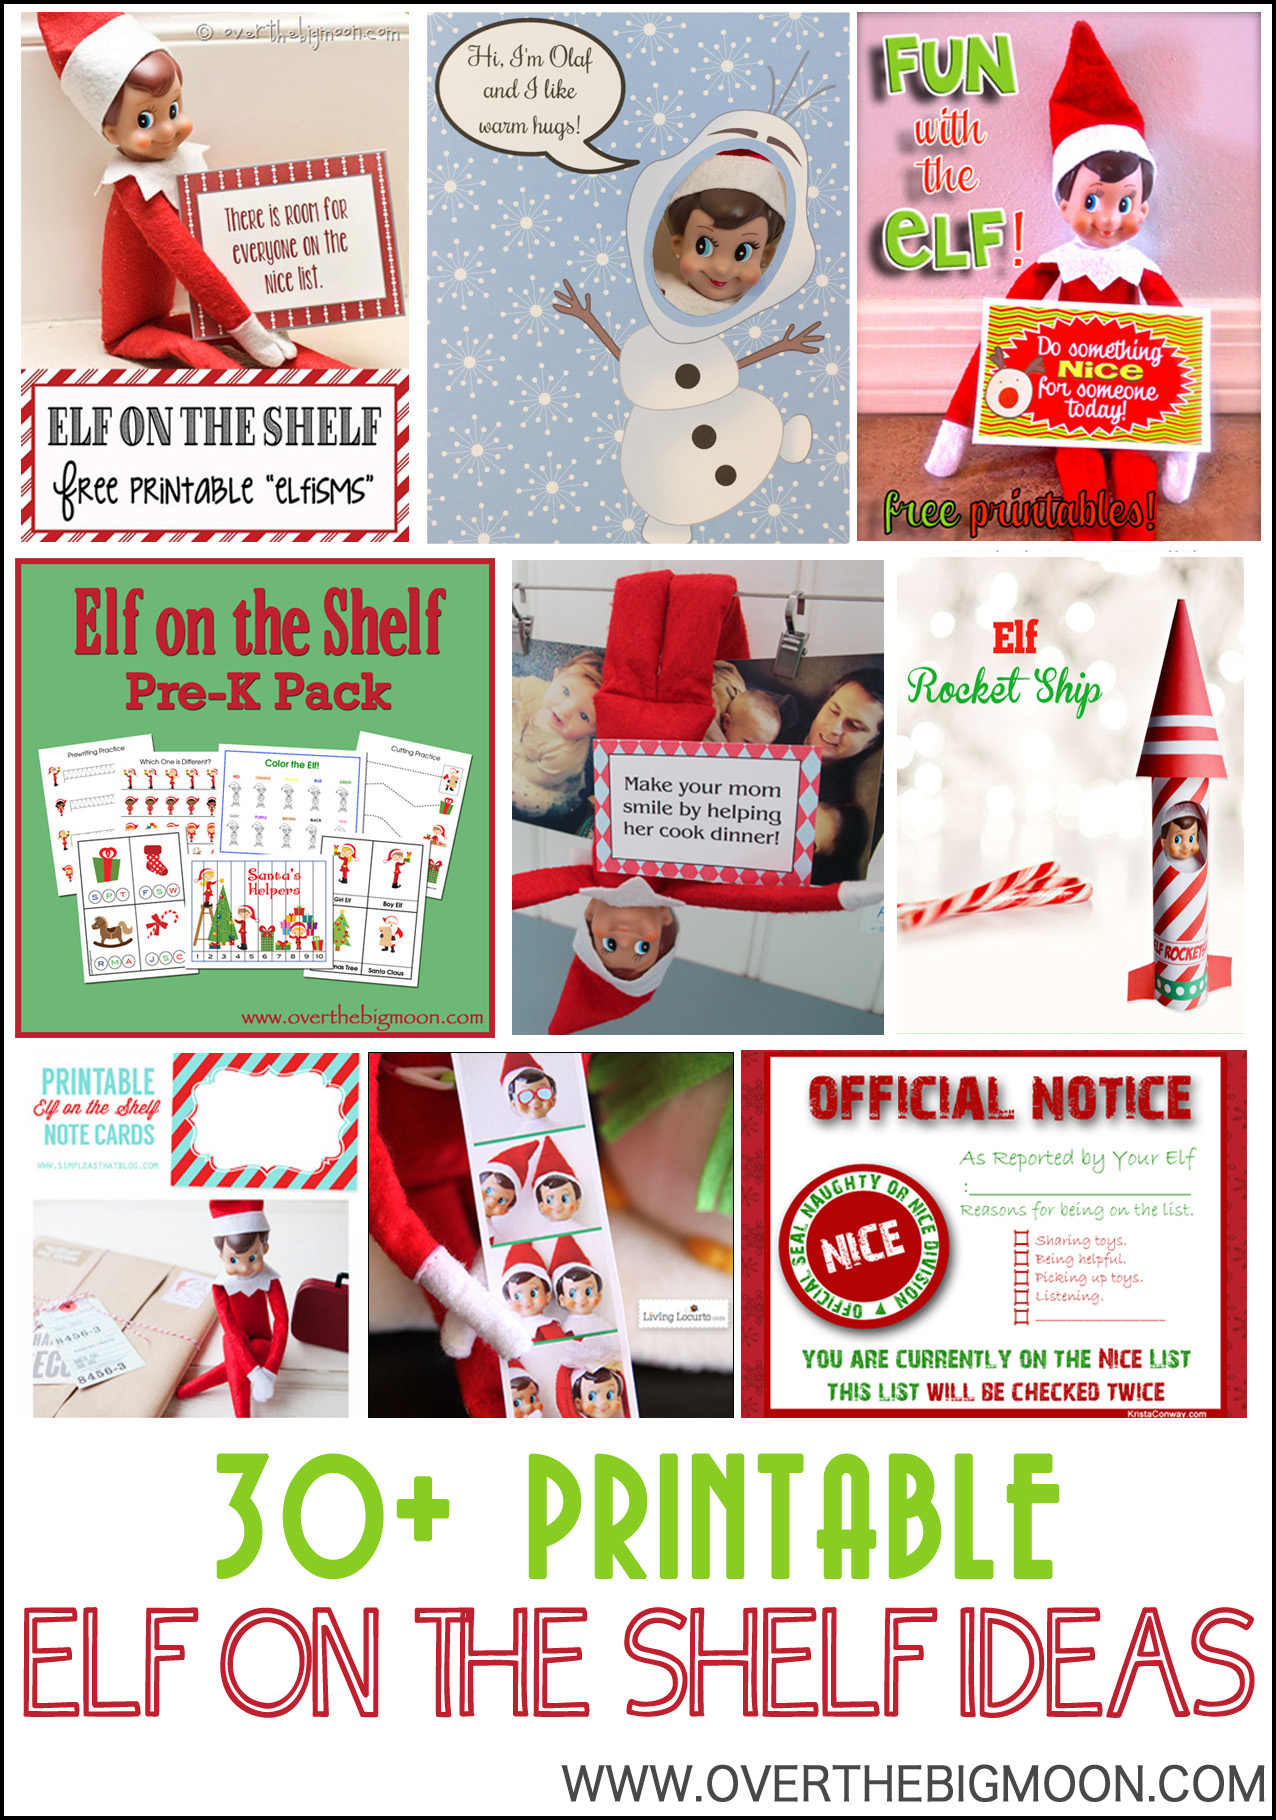 30+ Printable Elf On The Shelf Ideas - Over The Big Moon - Free Printable Elf On The Shelf Notes